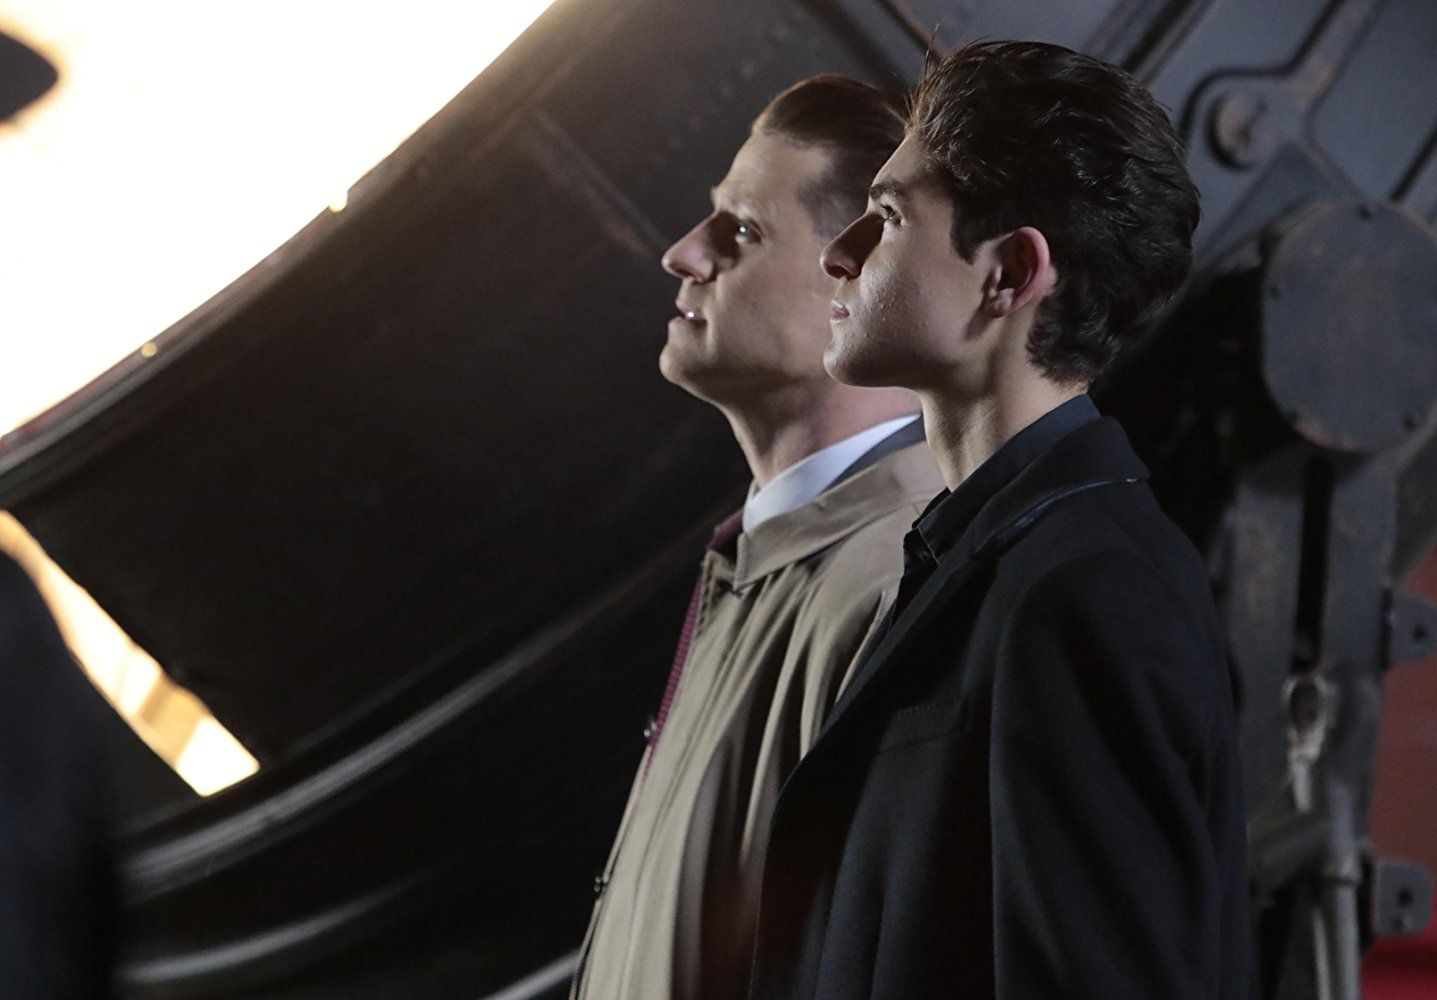 Gotham Season 5 Might Only Run for 10 Episodes | Collider